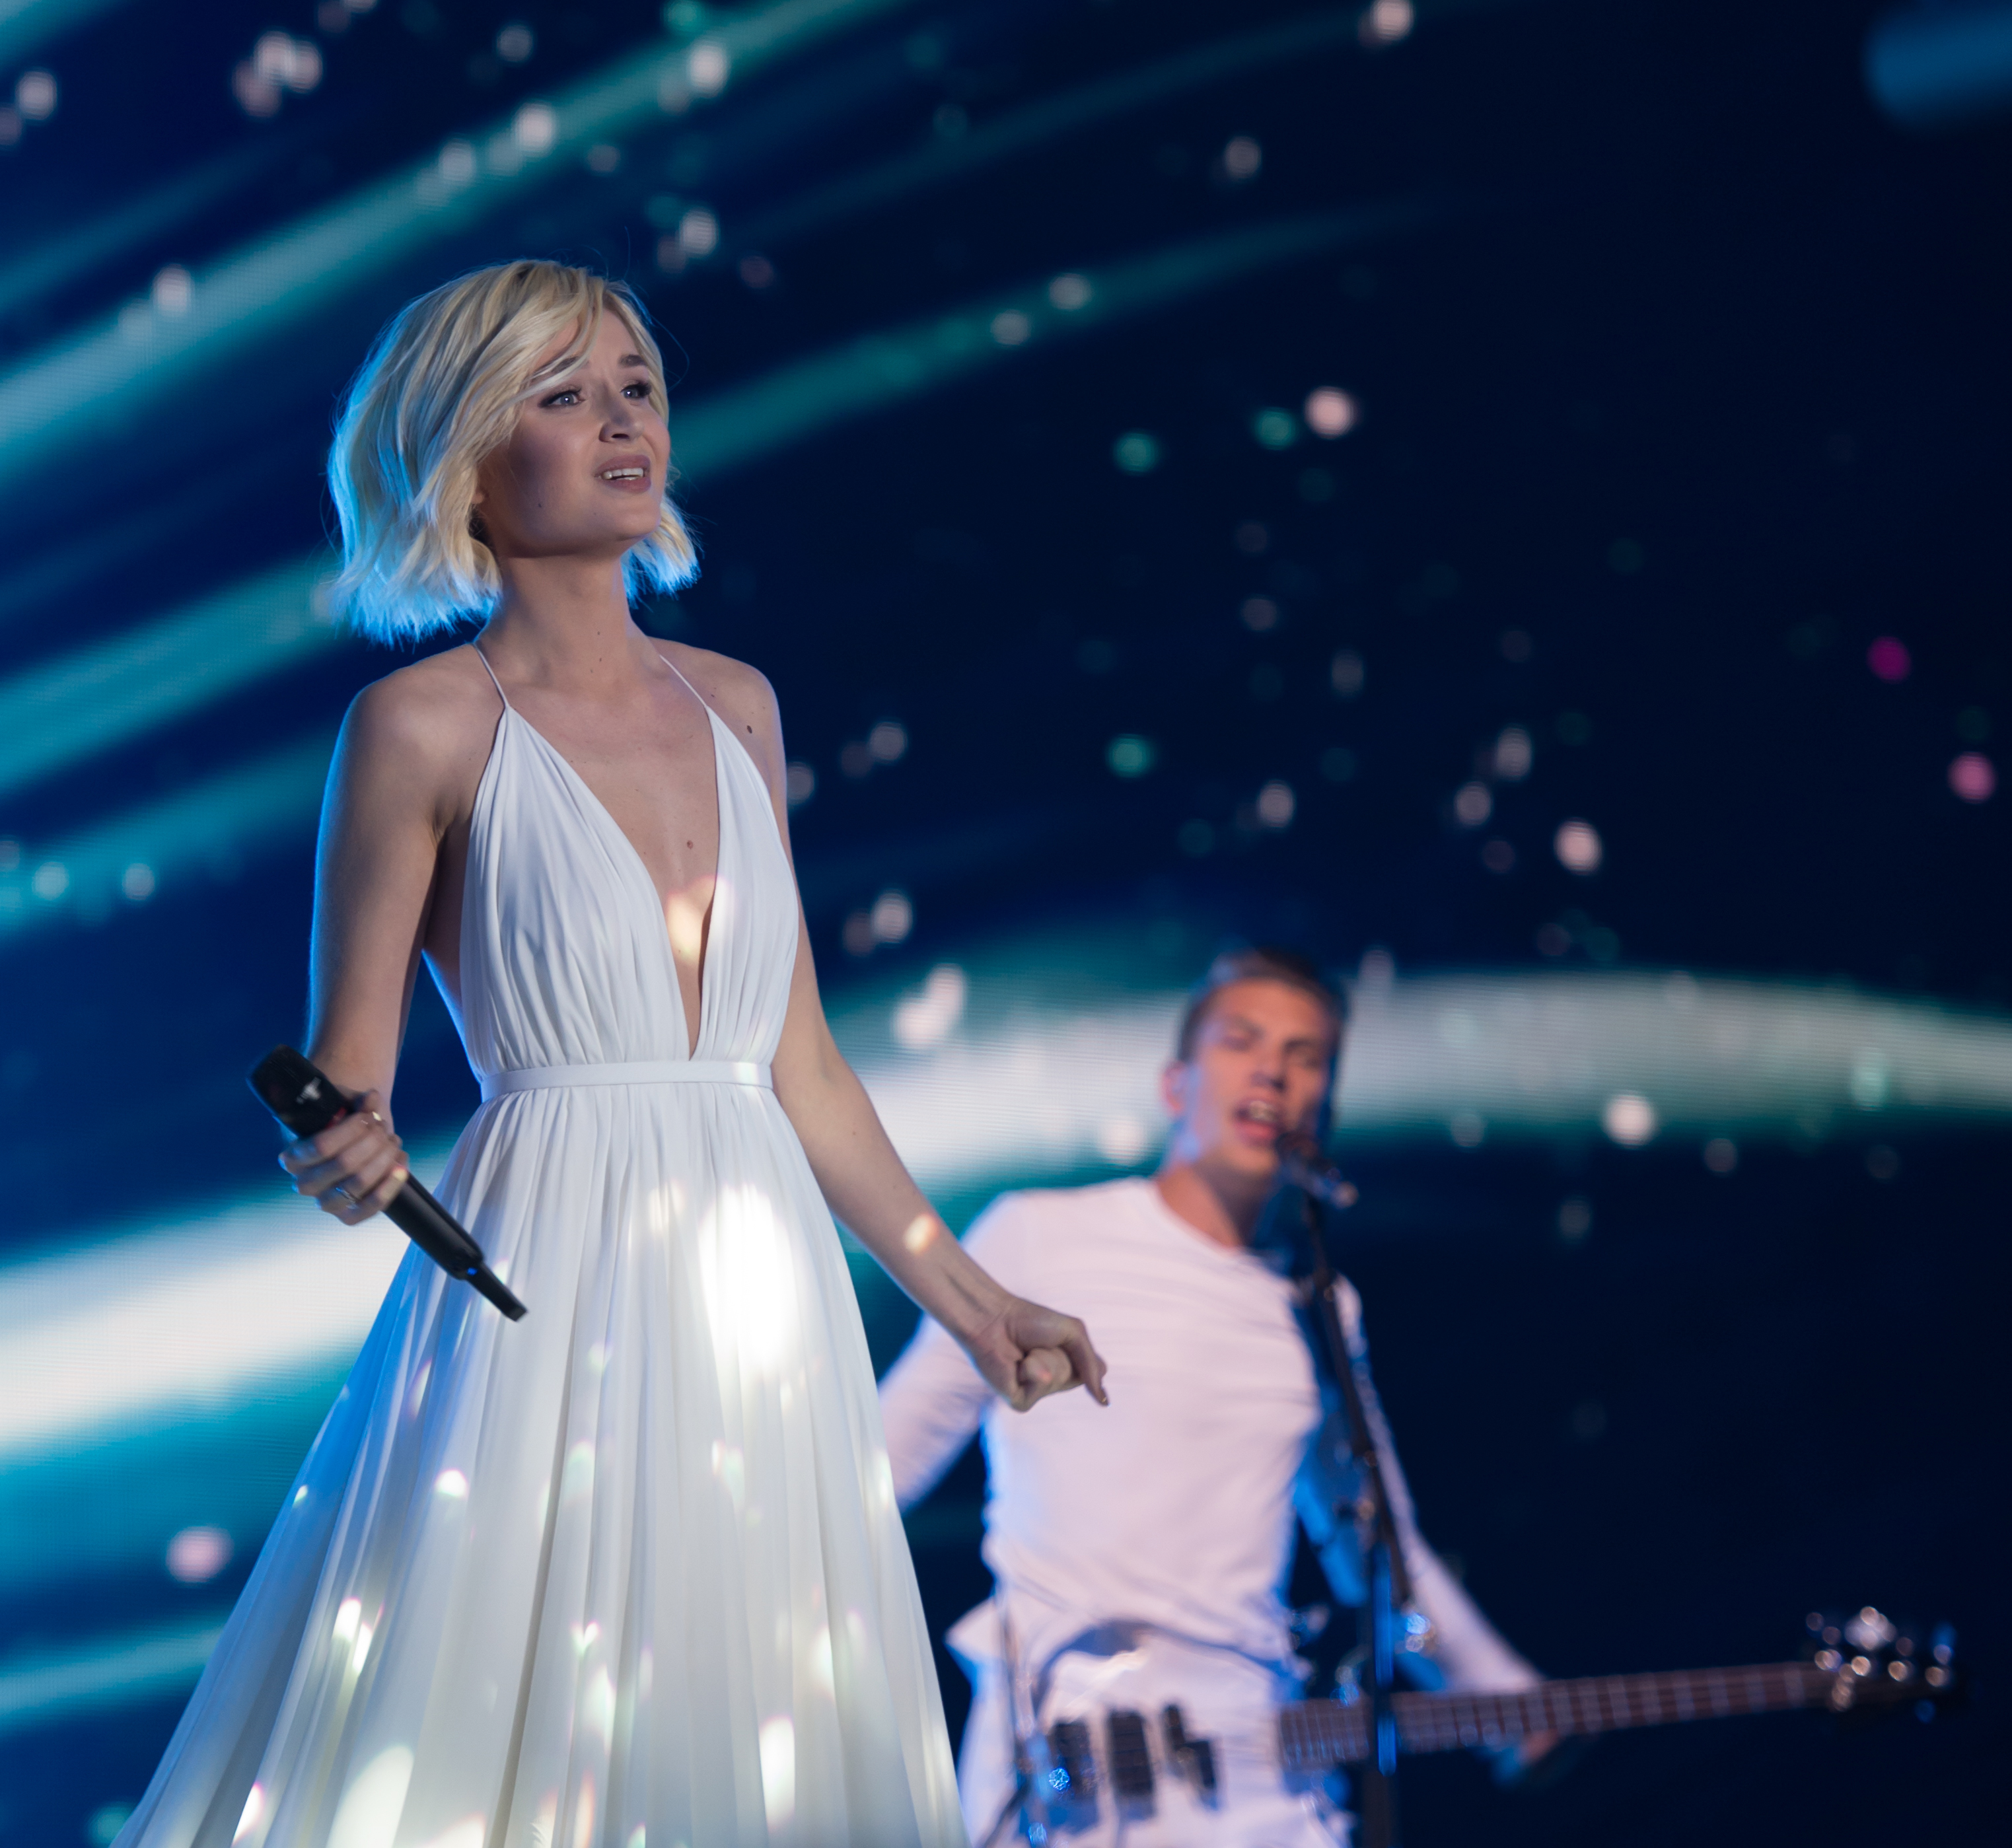 Pictures Polina Gagarina Blonde girl Eurovision 2015 Girls Music Celebrities frock female young woman gown Dress